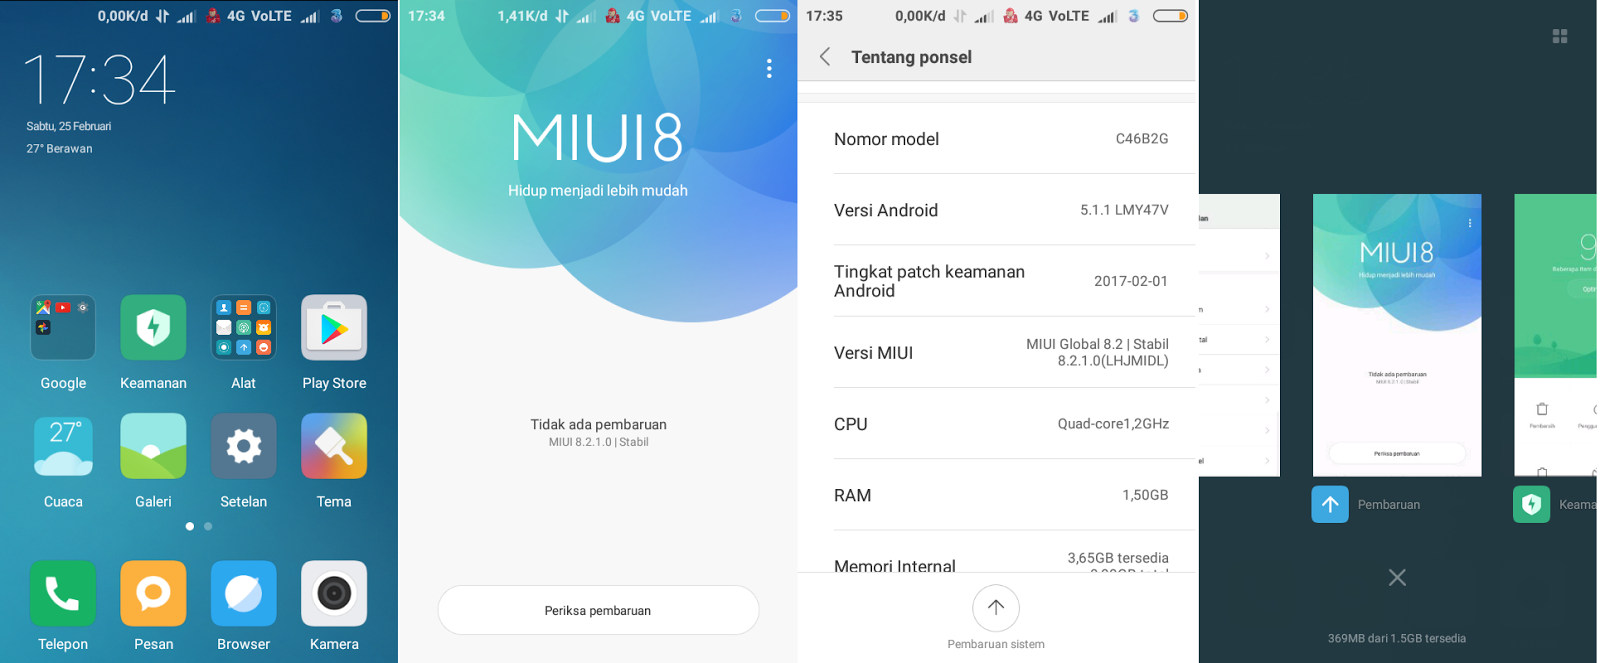 Custom ROM Miui 8 Global Stable 8.2.1.0 VoLTE Andromax ES 8210